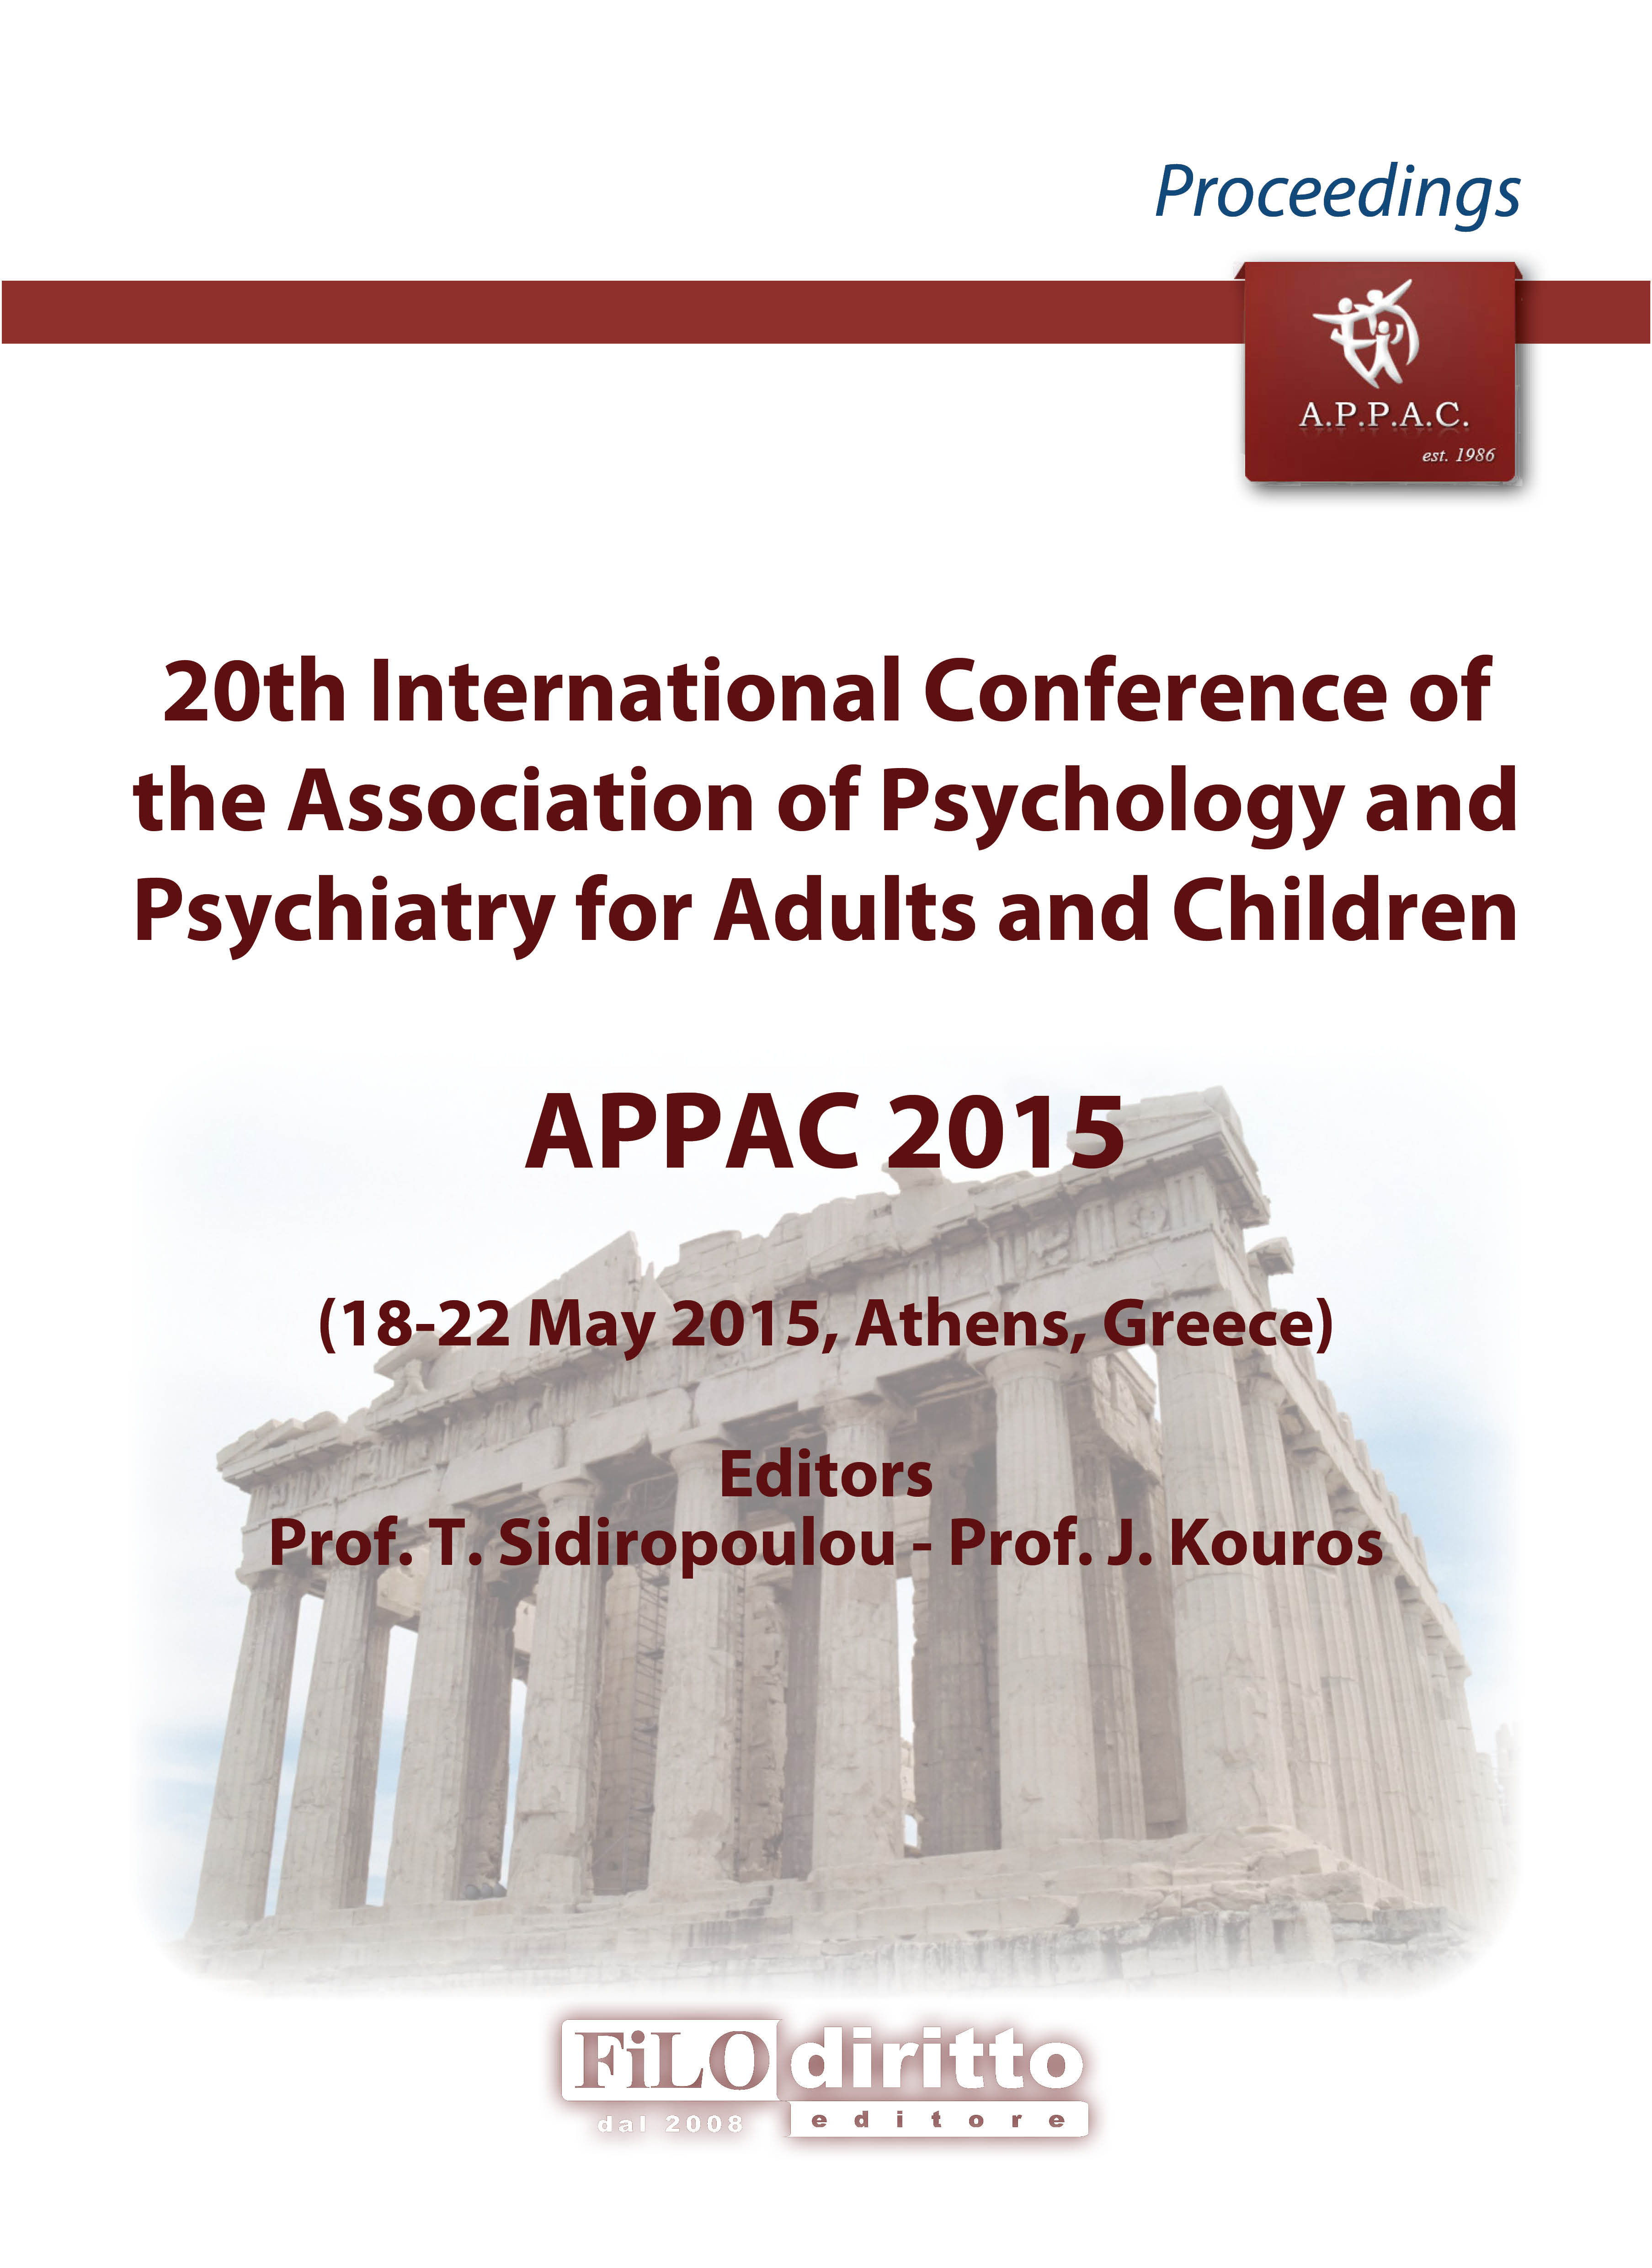 20th International Conference of the Association of Psychology and Psychiatry for Adults and Children - APPAC 2015